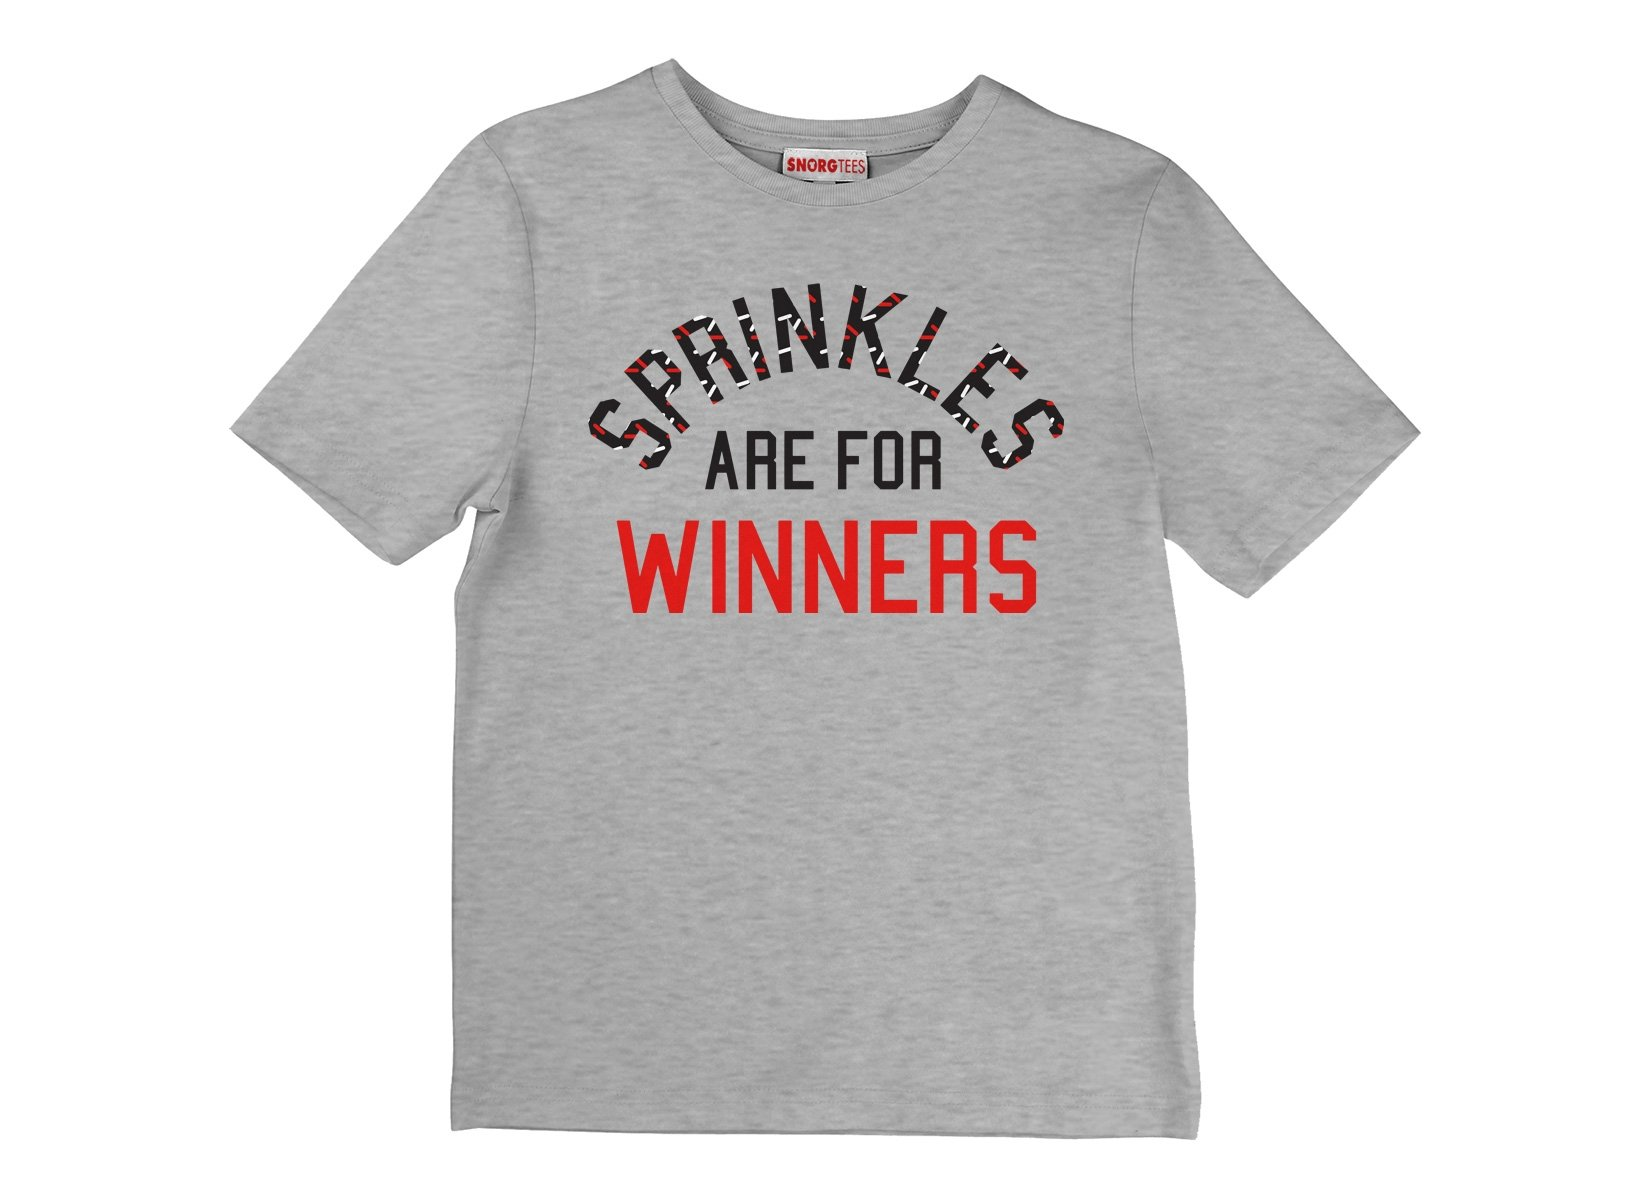 Sprinkles Are For Winners on Kids T-Shirt